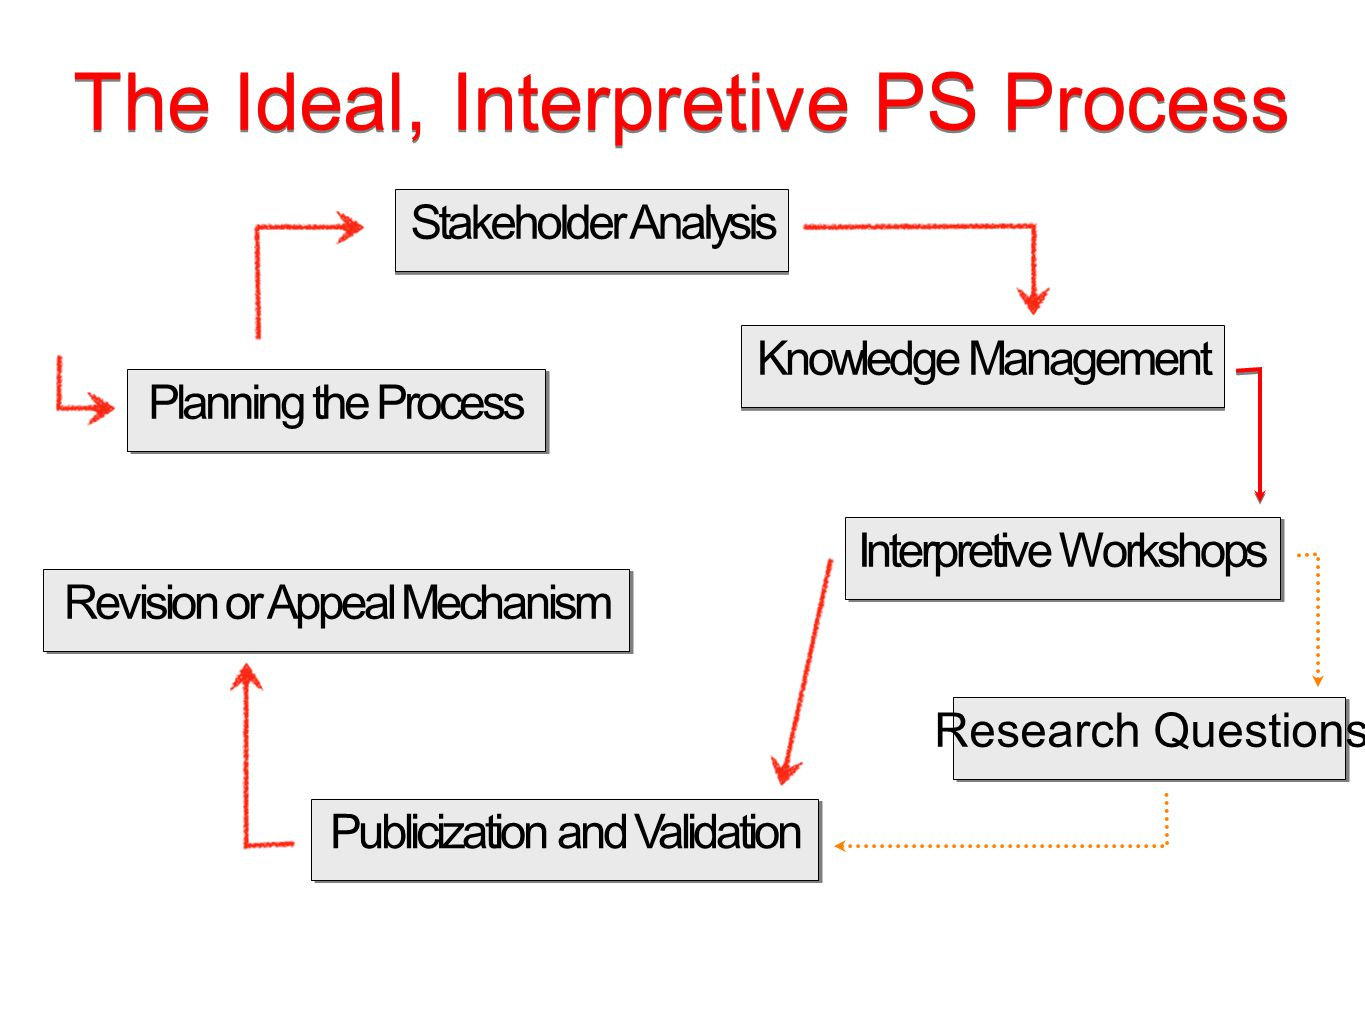 Planning the Process Stakeholder Analysis Knowledge Management Interpretive Workshops Research Questions Publicization and Validation Revision or Appeal Mechanism The Ideal, Interpretive PS Process